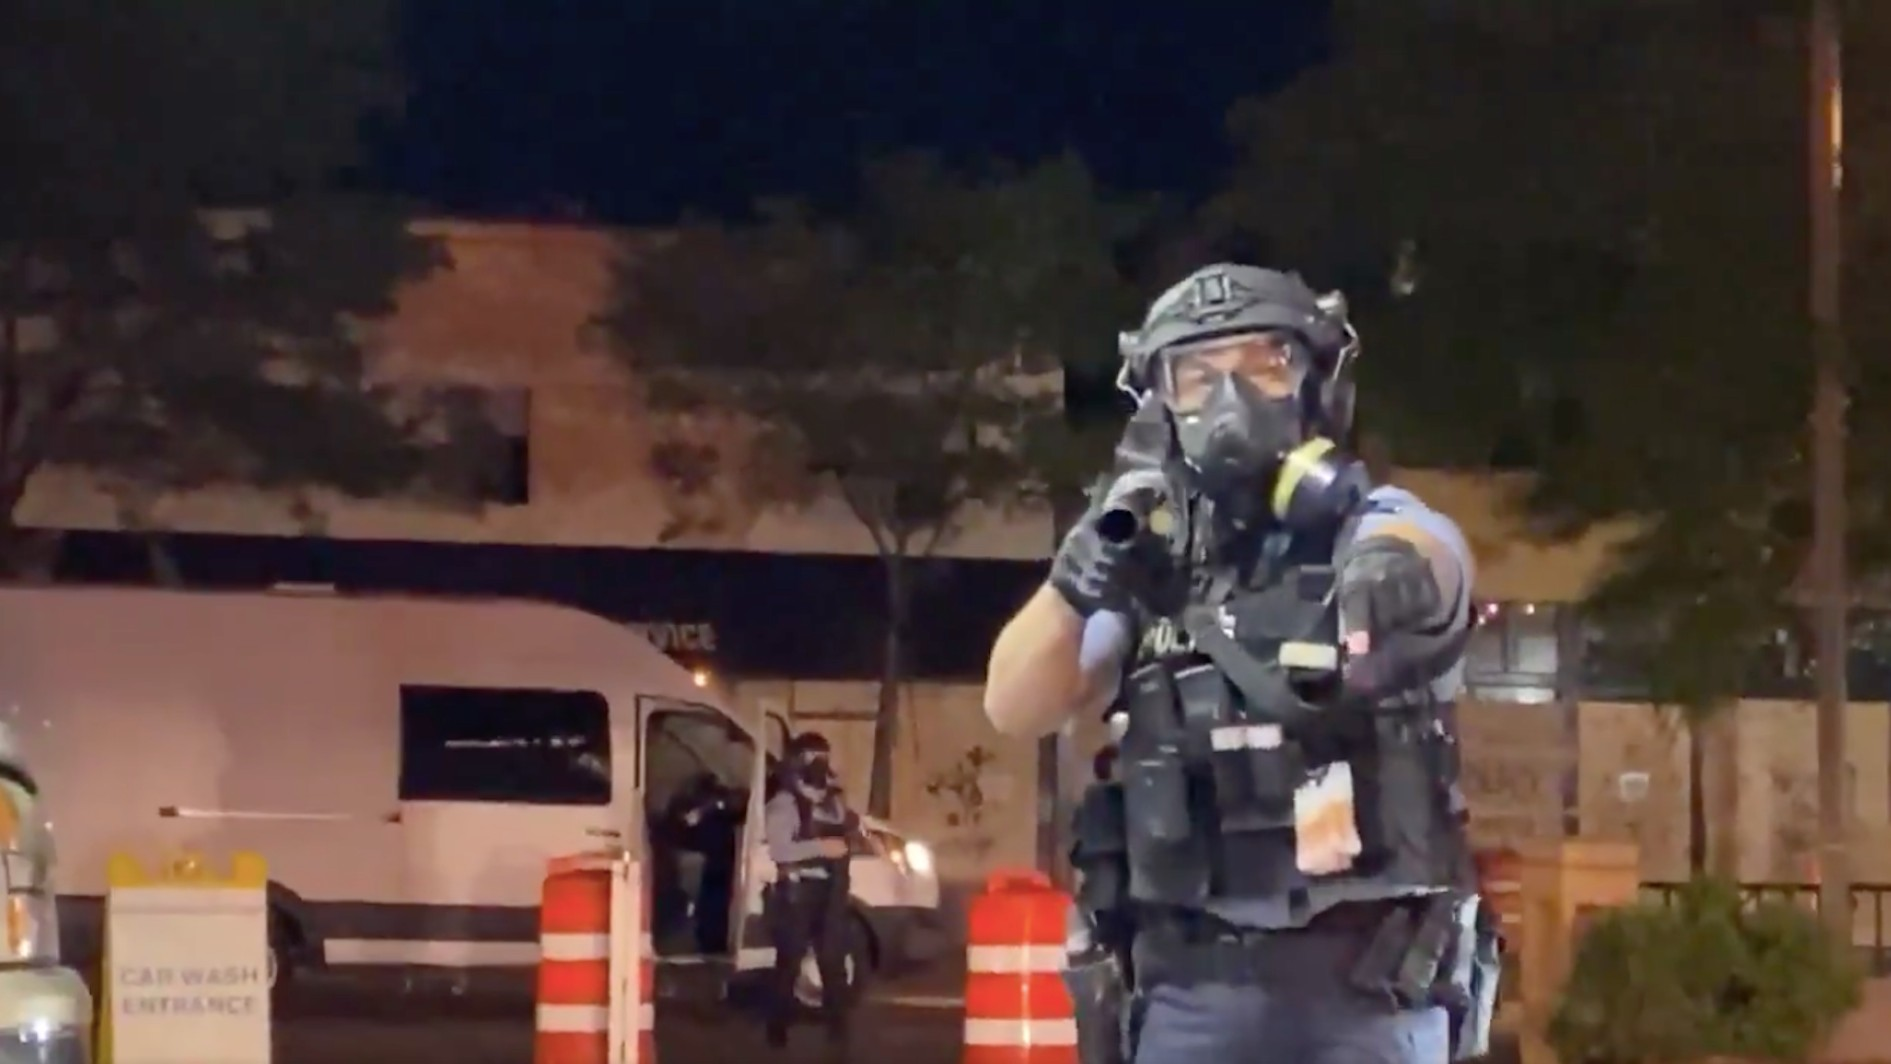 , I Told Riot Cops I'm a Journalist. They Forced Me to the Ground and Pepper-Sprayed Me in the Face., Saubio Making Wealth